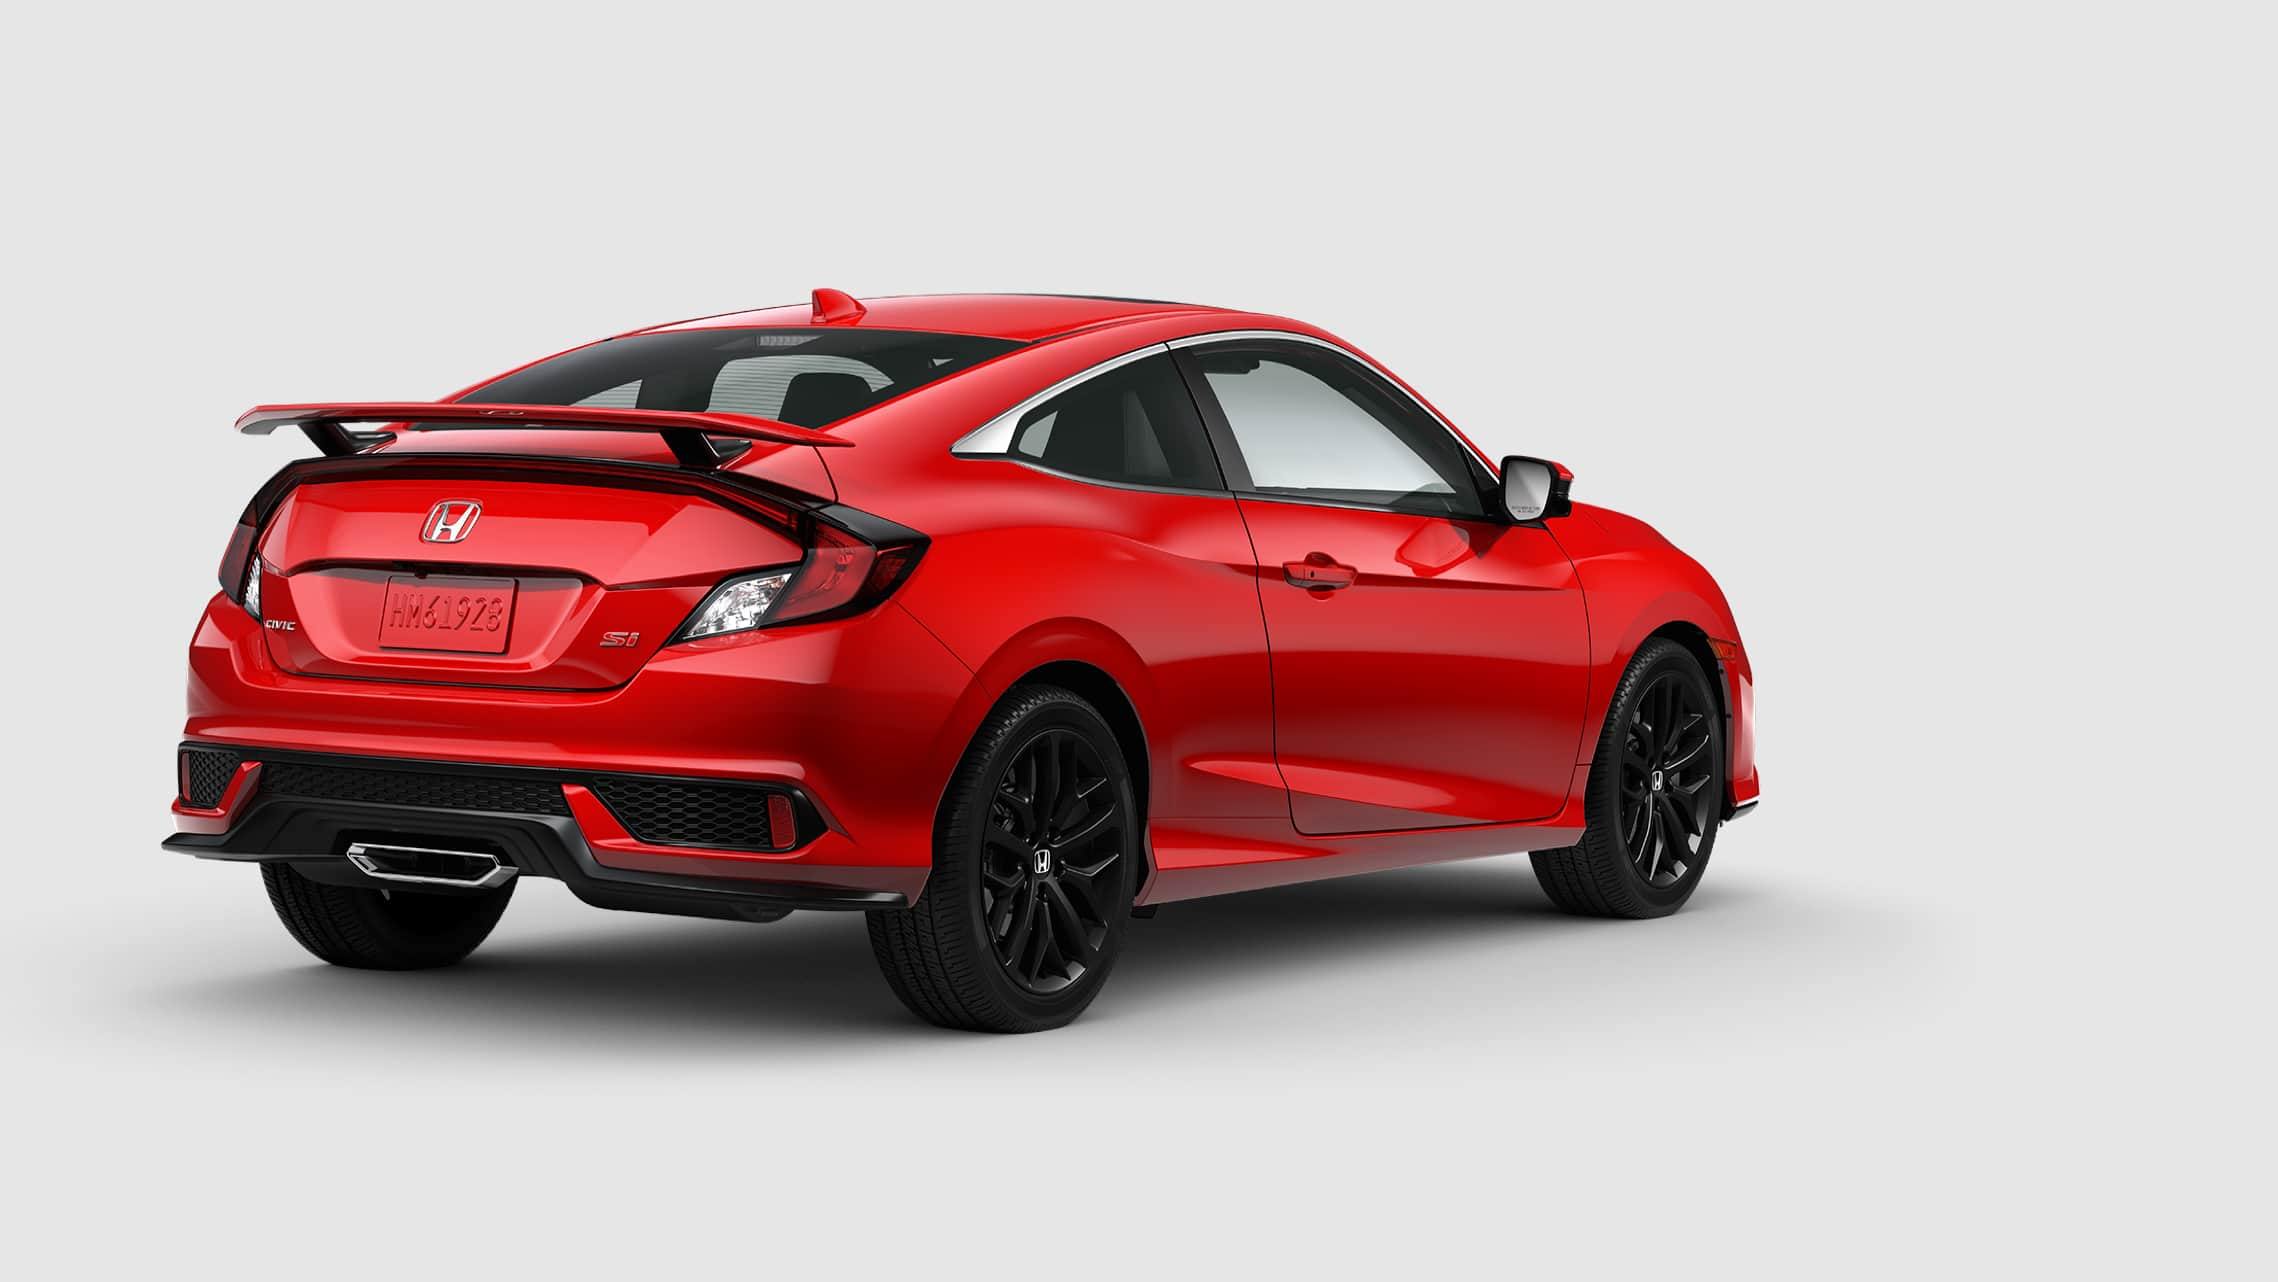 Vista trasera del Honda Civic Si Coupé 2020 en Rallye Red.